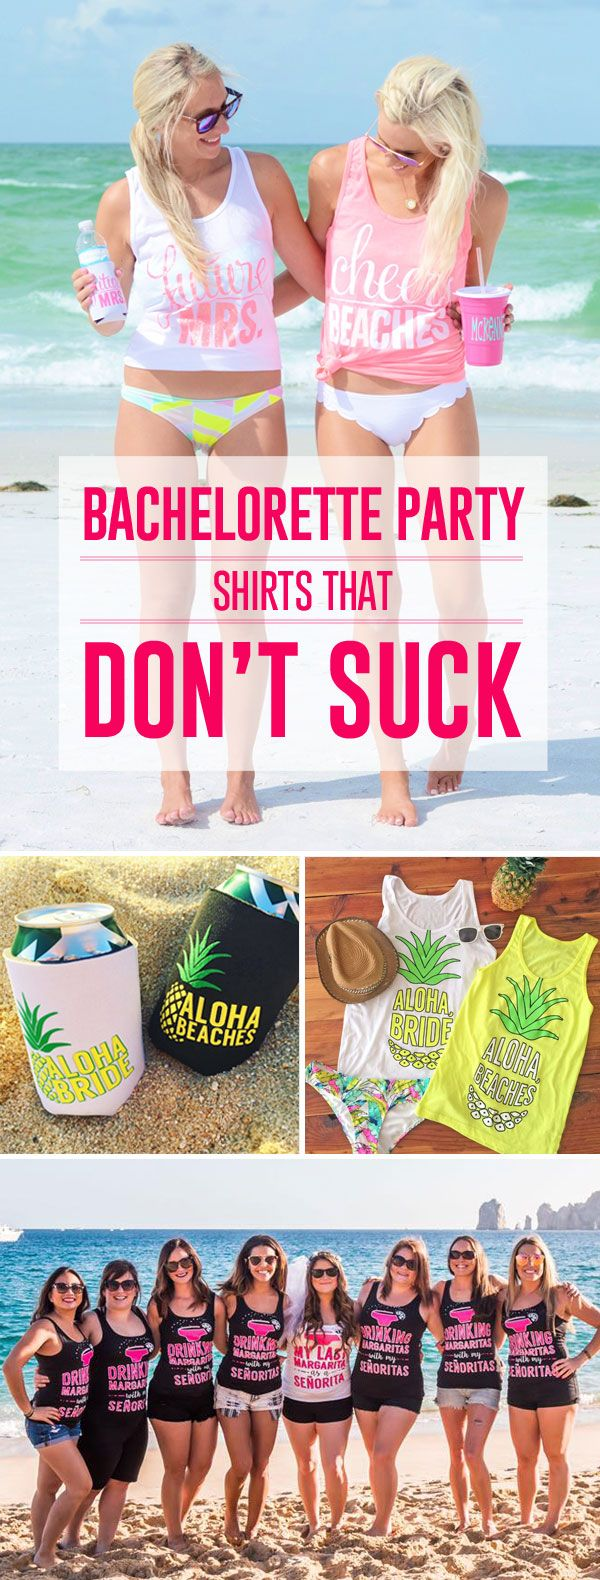 Our bachelorette shirts are as witty as they are adorable! Lots of colors and styles! Make your bachelorette party legendary with our fun and flattering shirts and accessories!